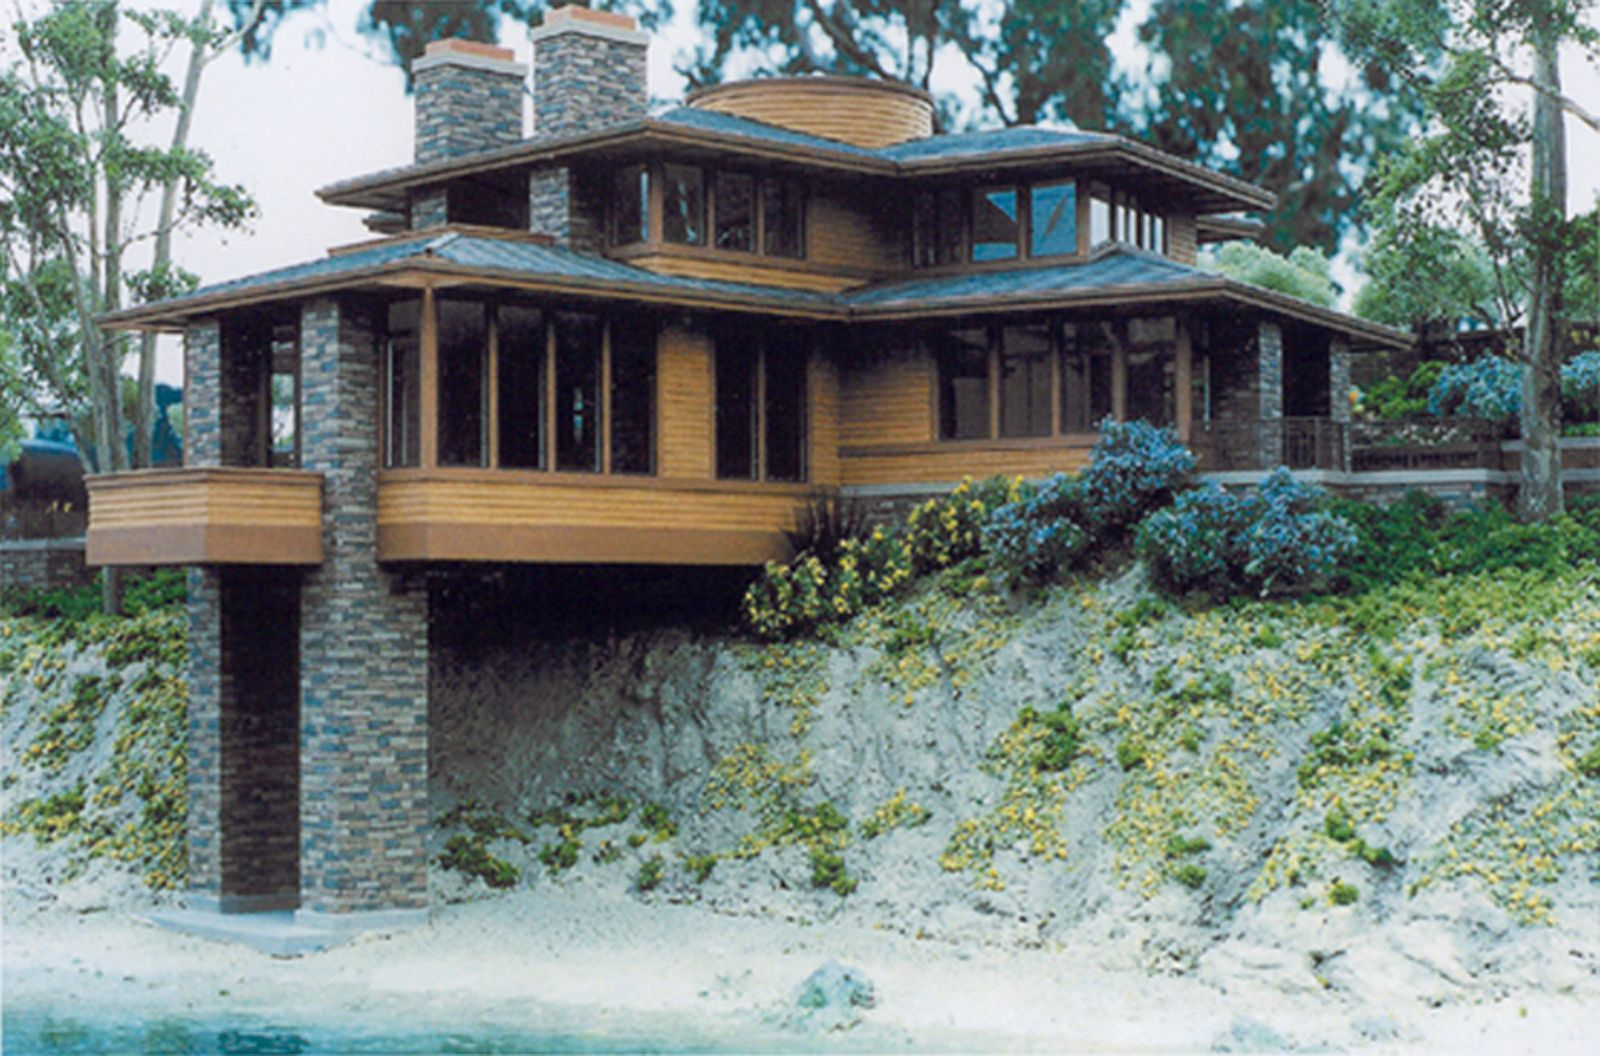 Frank Lloyd Wright Style House This I Love This Exterior Windows & Siding = Yes Stone..not